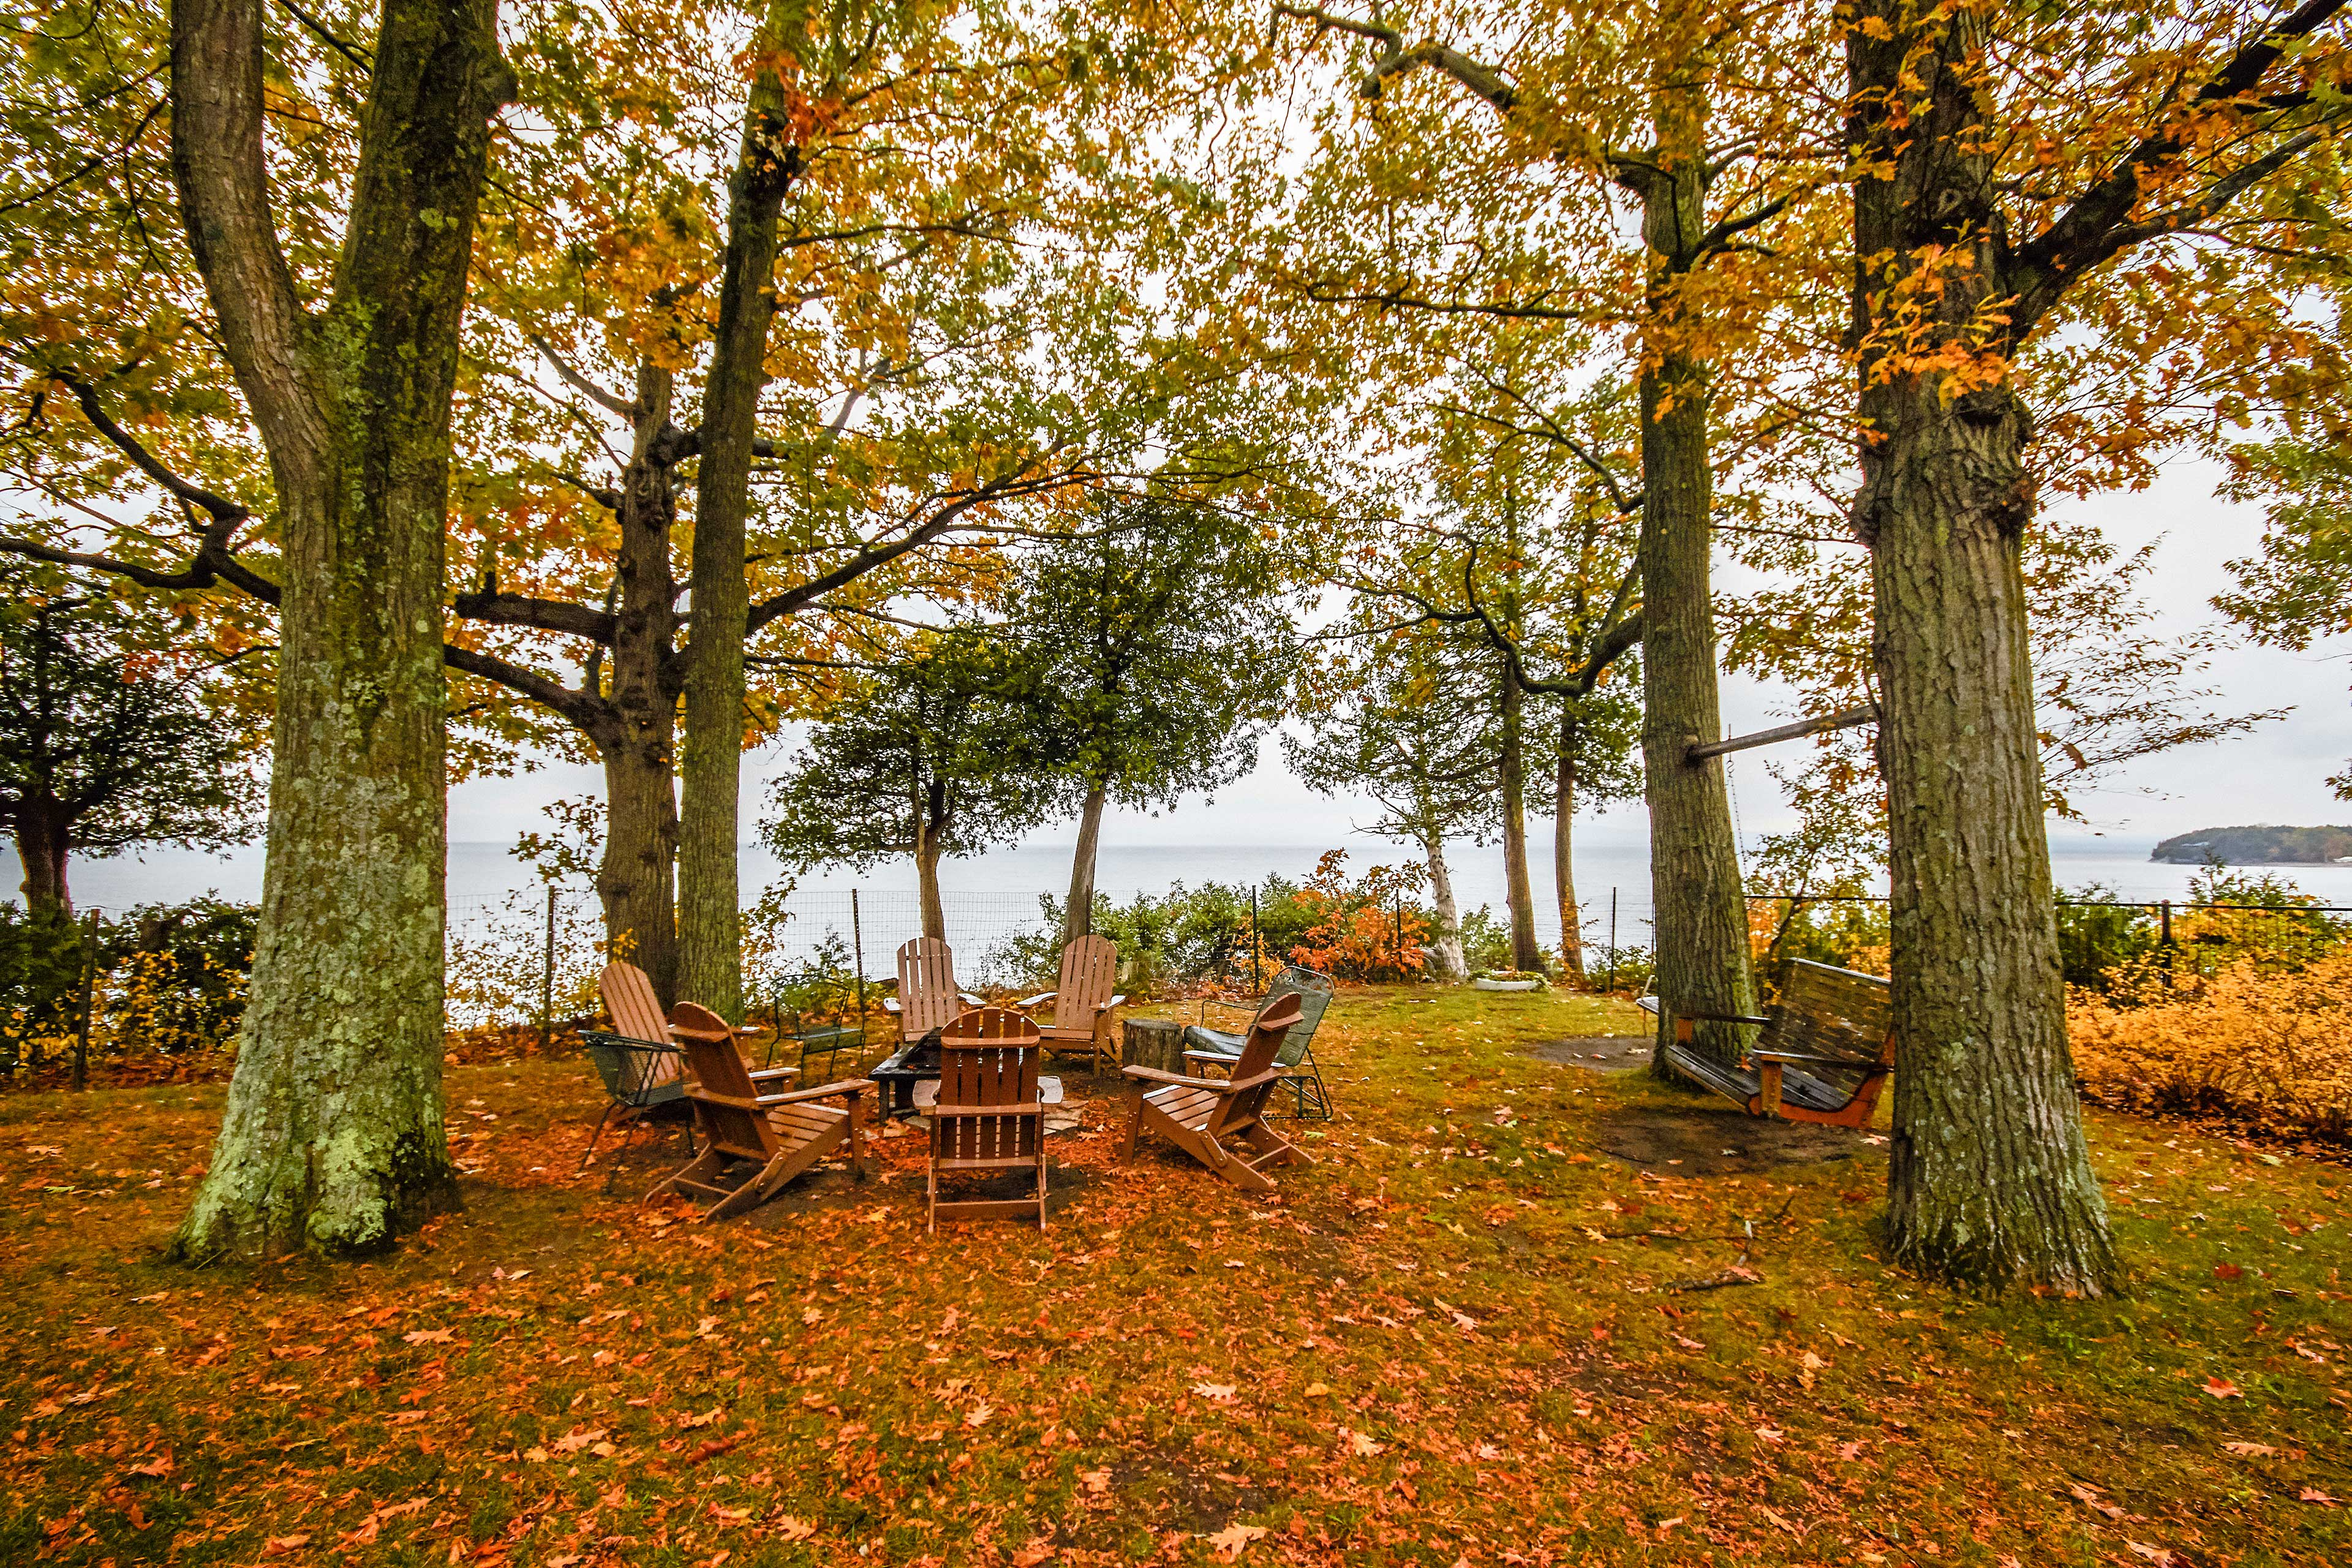 Across the property, you'll find red oaks, shagbark oaks, and ironwood trees.